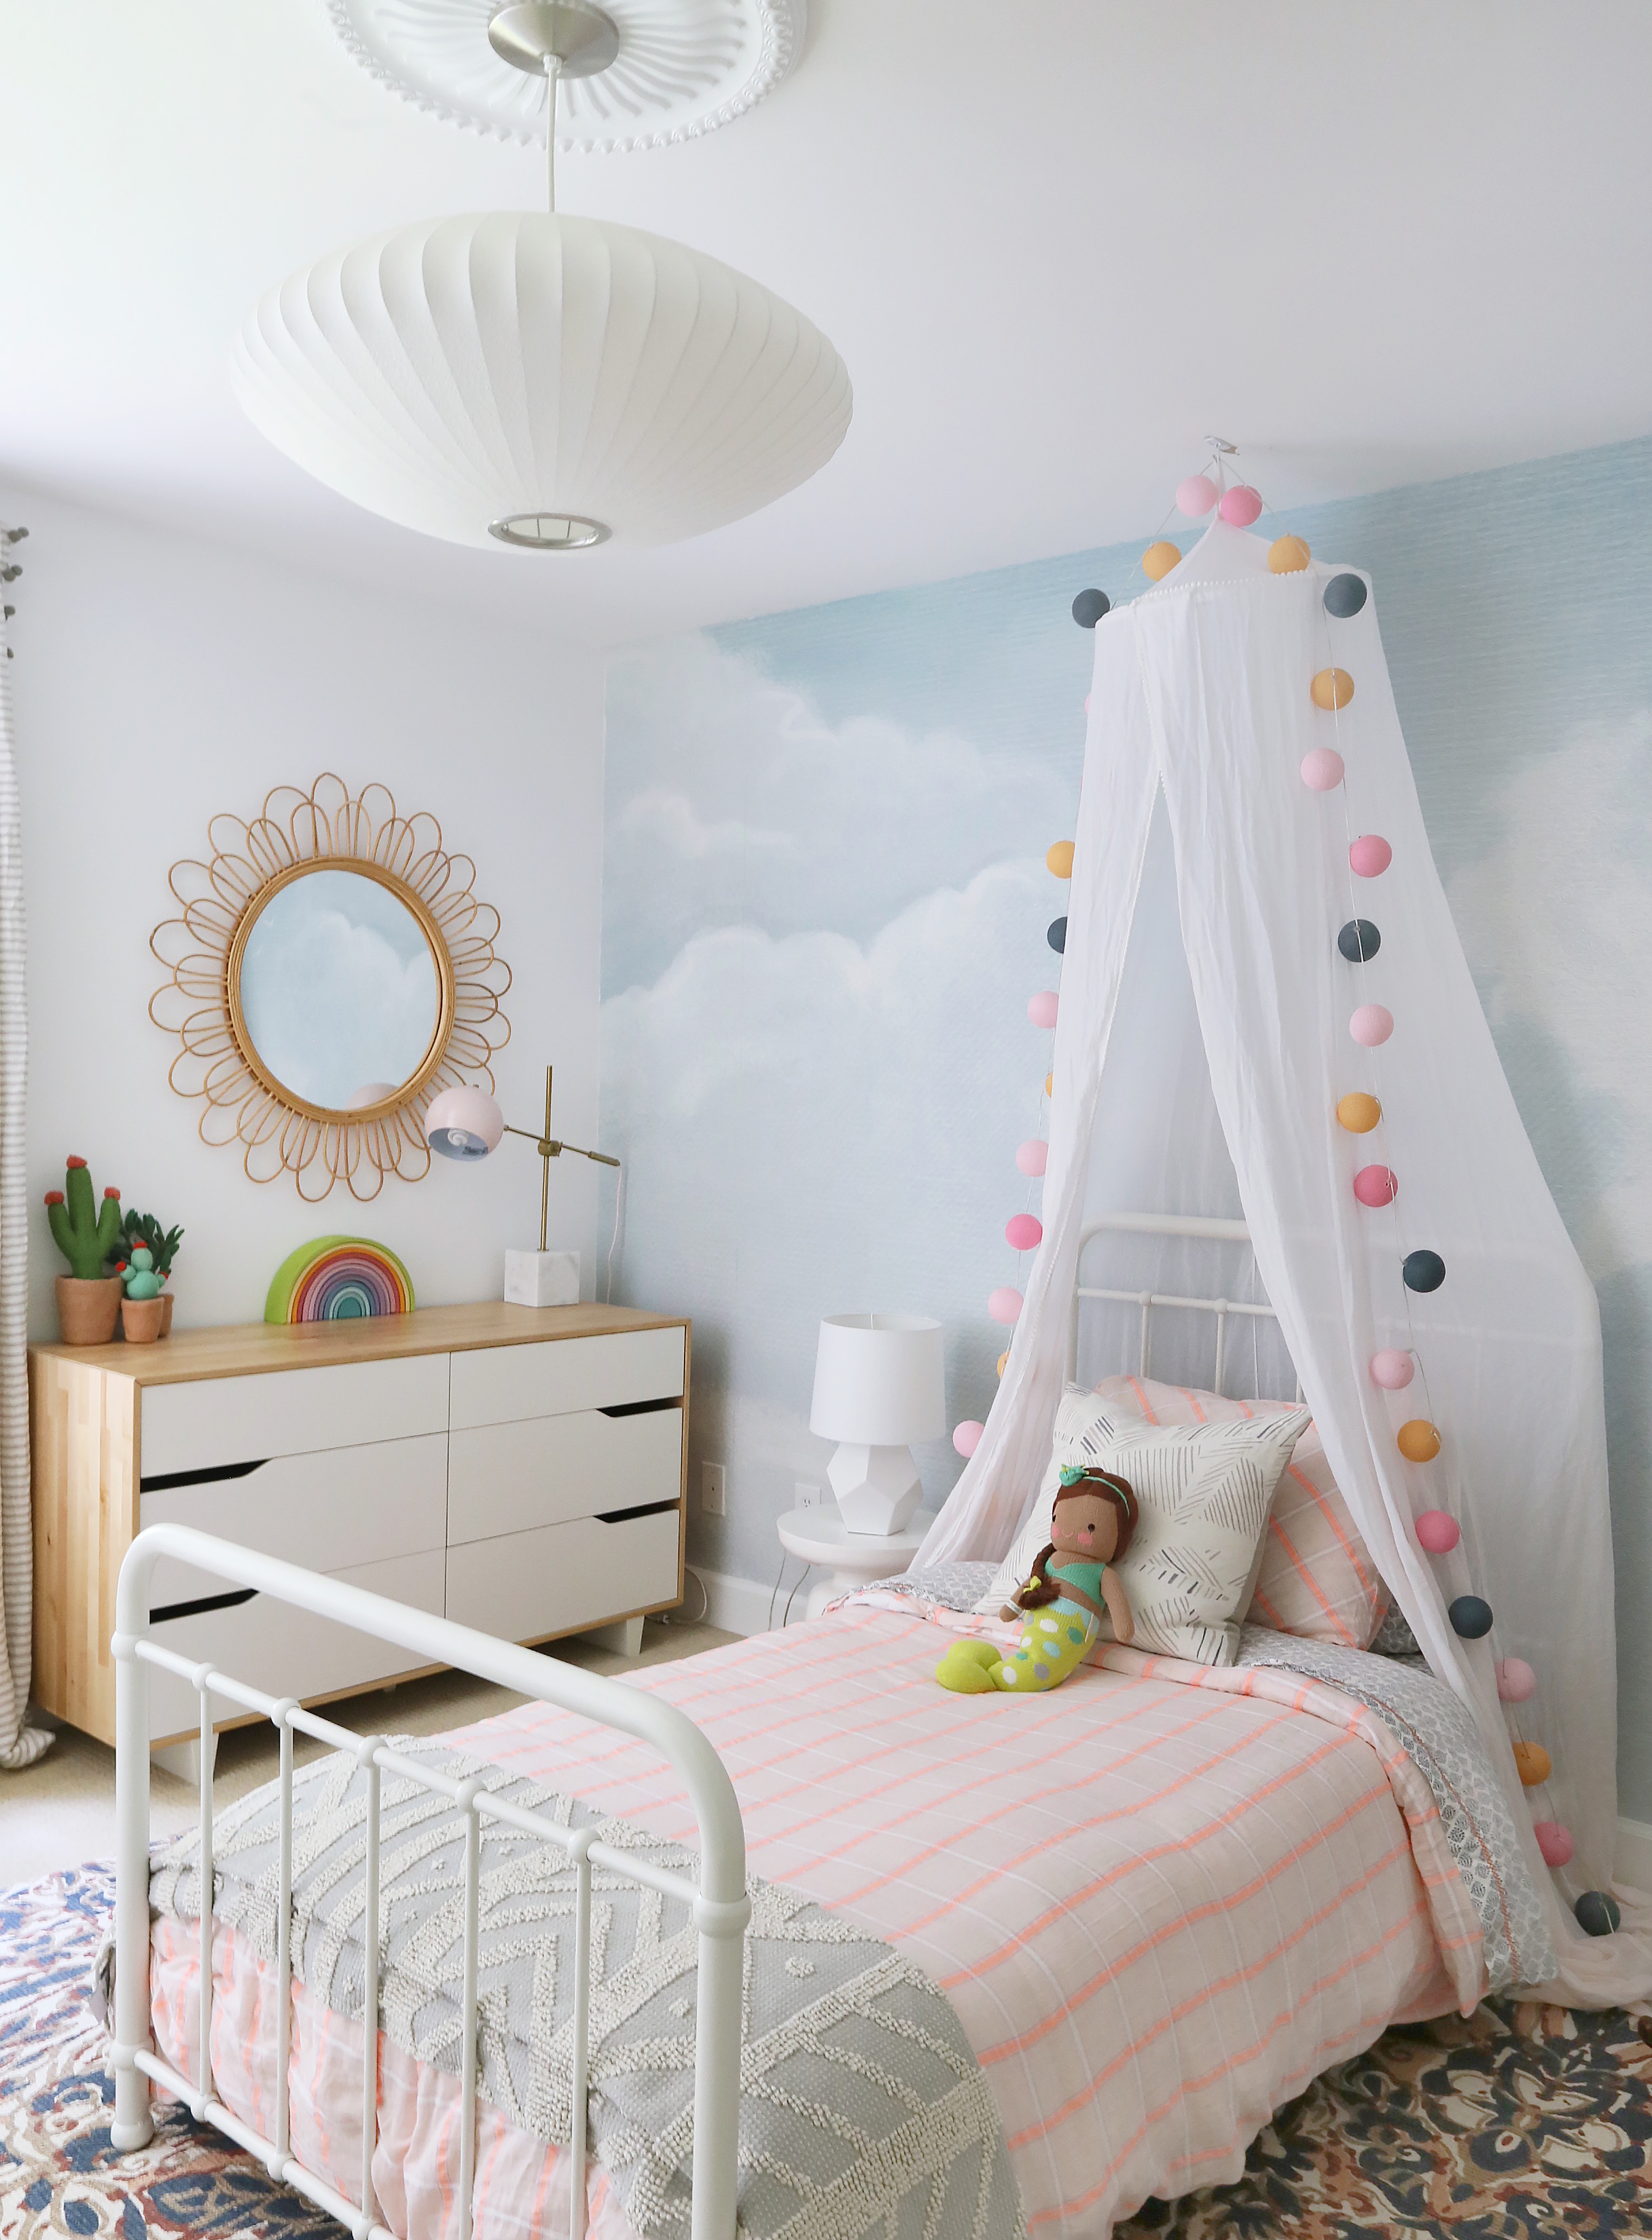 Whimsical Girl's Room